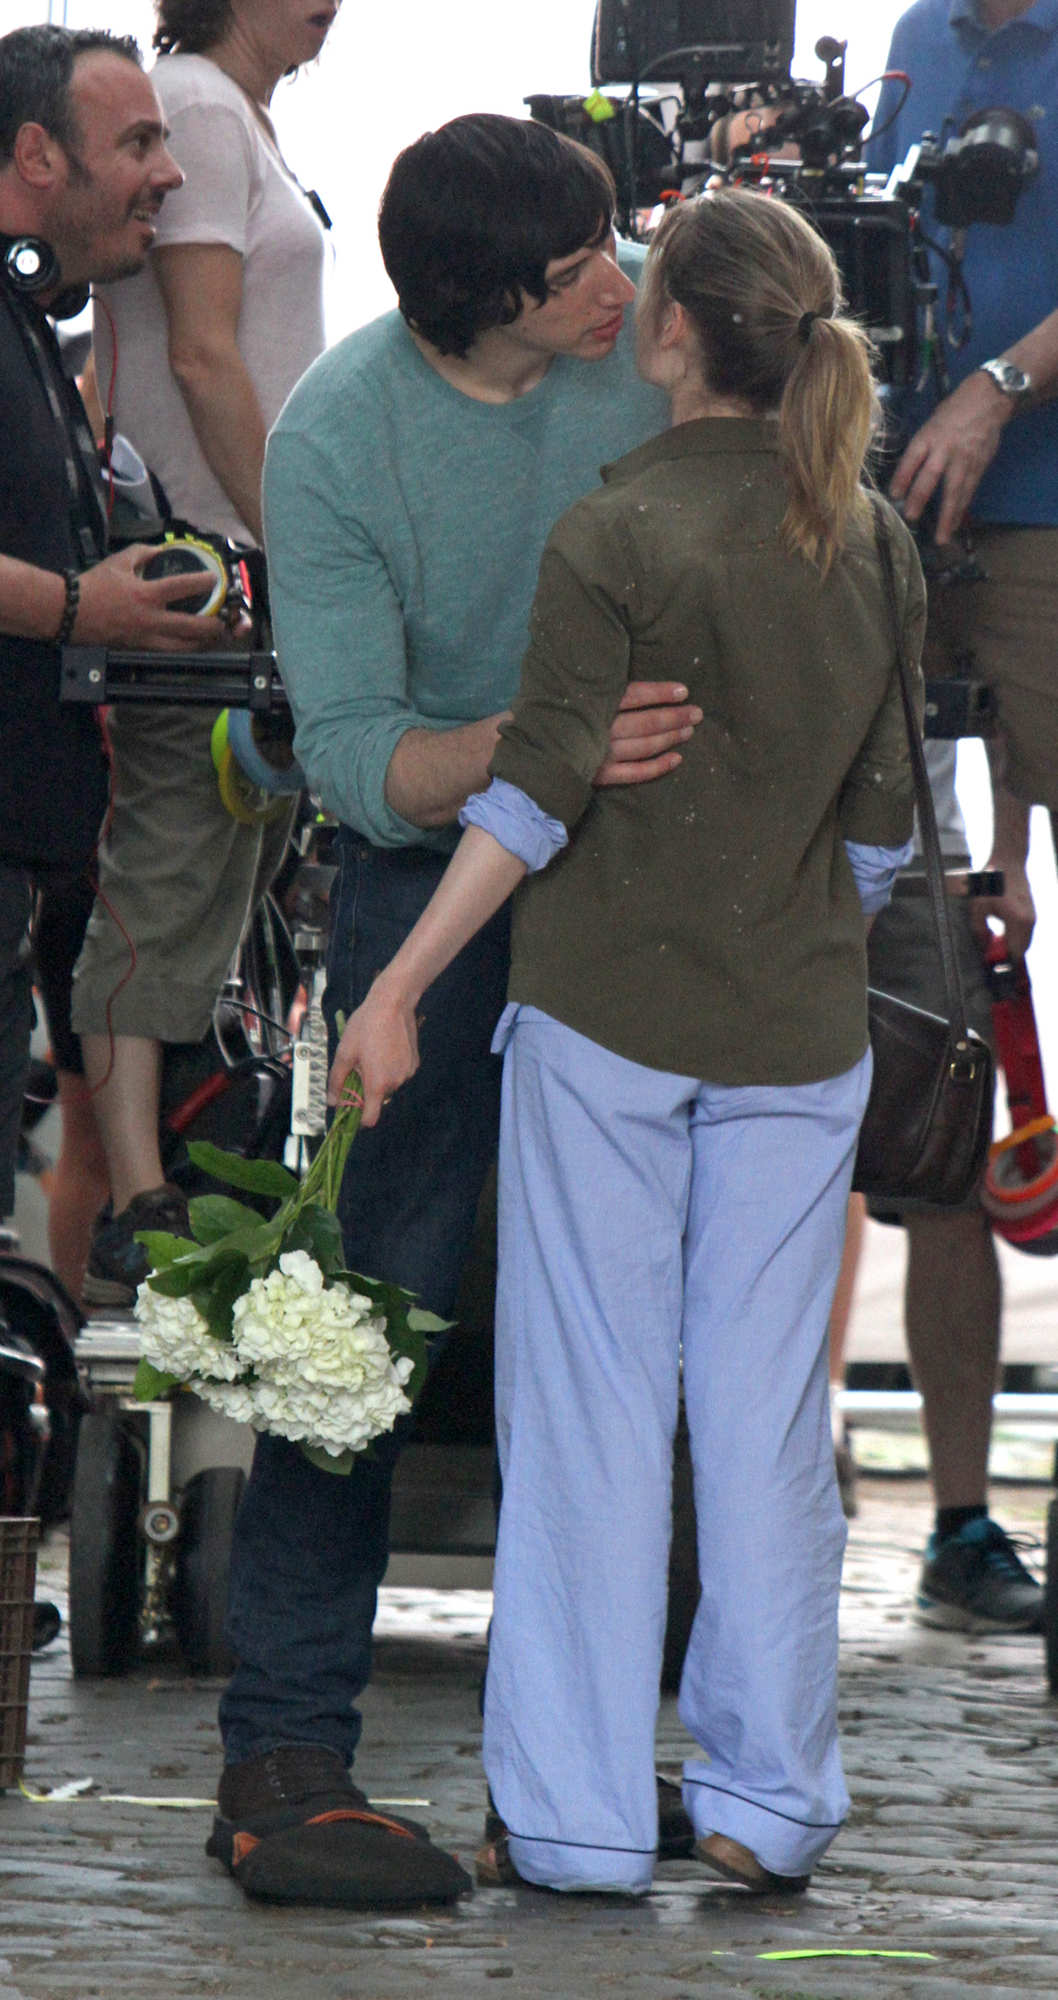 "Adam Driver seen giving flowers and a kiss to Gillian Jacobs as they film a scene on the set of the HBO series ""Girls"" in Bushwick, Brooklyn. <P> Pictured: Adam Driver and Gillian Jacobs <P> <B>Ref: SPL774558  040614  </B><BR/> Picture by: Jose Perez / Splash News<BR/> </P><P> <B>Splash News and Pictures</B><BR/> Los Angeles:	310-821-2666<BR/> New York:	212-619-2666<BR/> London:	870-934-2666<BR/> photodesk@splashnews.com<BR/> </P>"